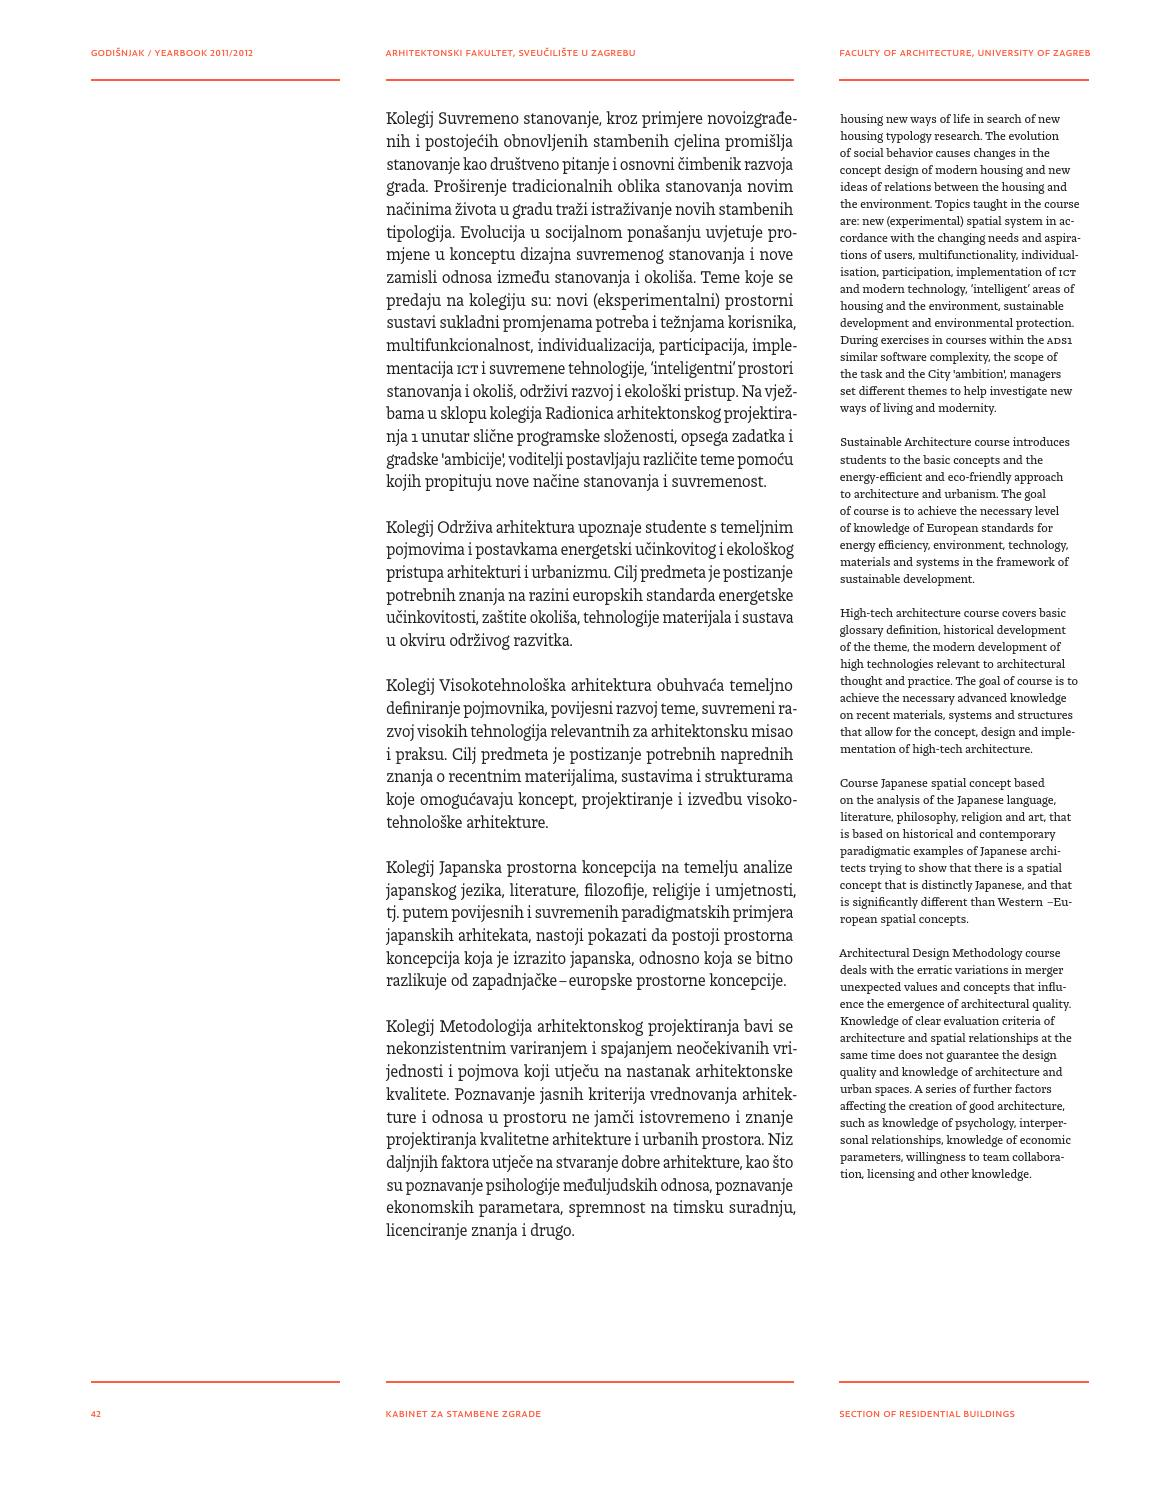 Faculty Of Architecture Zagreb Yearbook 2011 12 By Faculty Of Architecture Zagreb Issuu